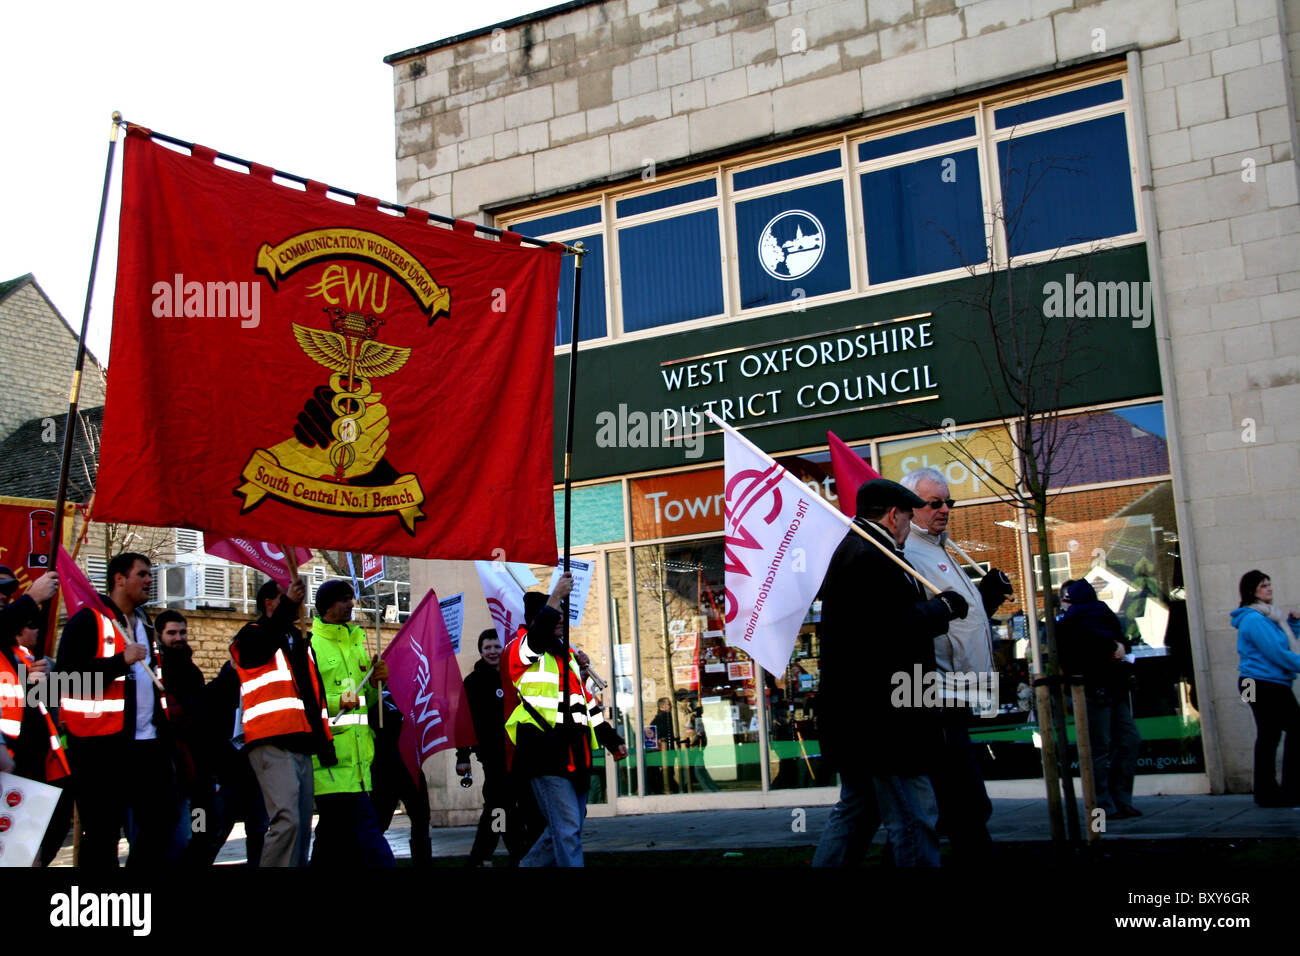 CWU banner with backdrop of Oxfordshire local office - Stock Image